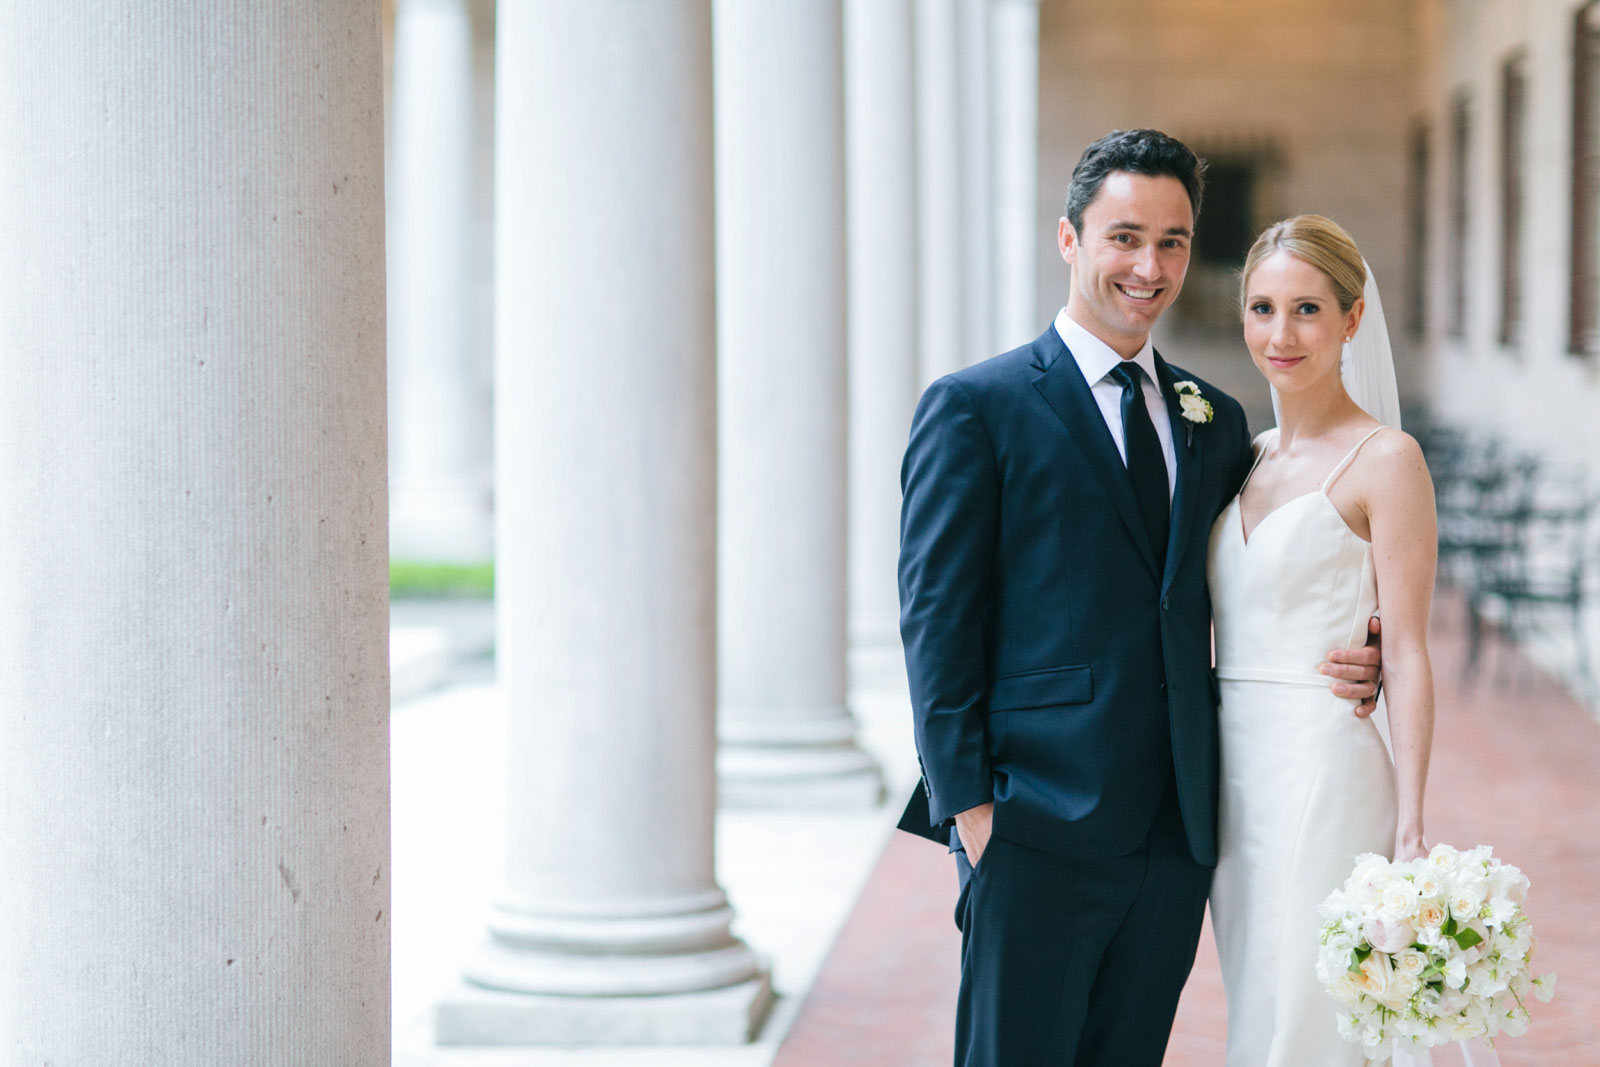 wedding portrait in courtyard of Boston public library with roman pillars and natural light